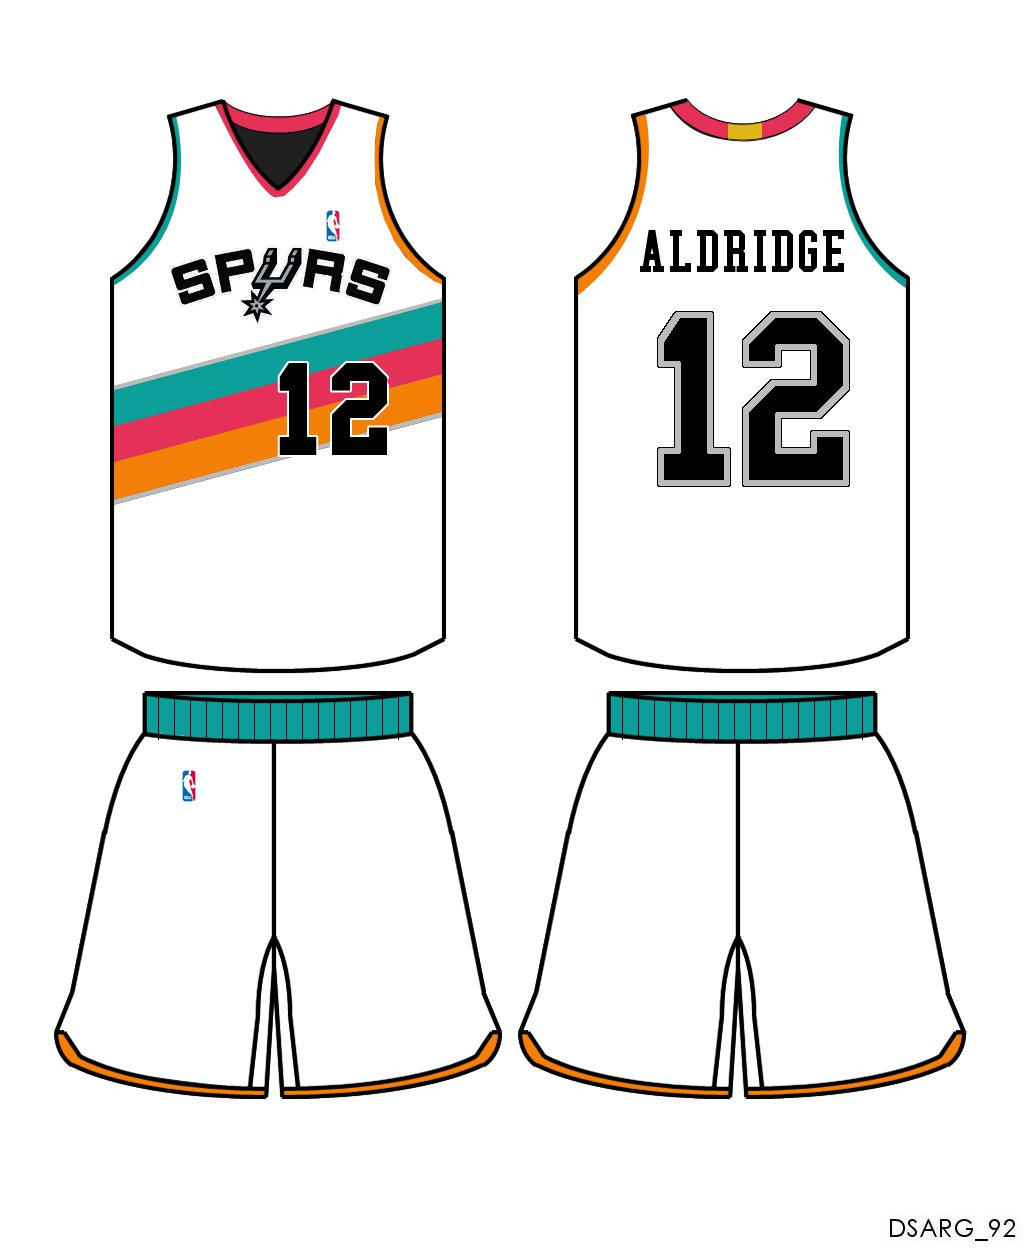 f545f58c131 More proof that the Spurs need Fiesta-themed uniforms - Pounding The ...